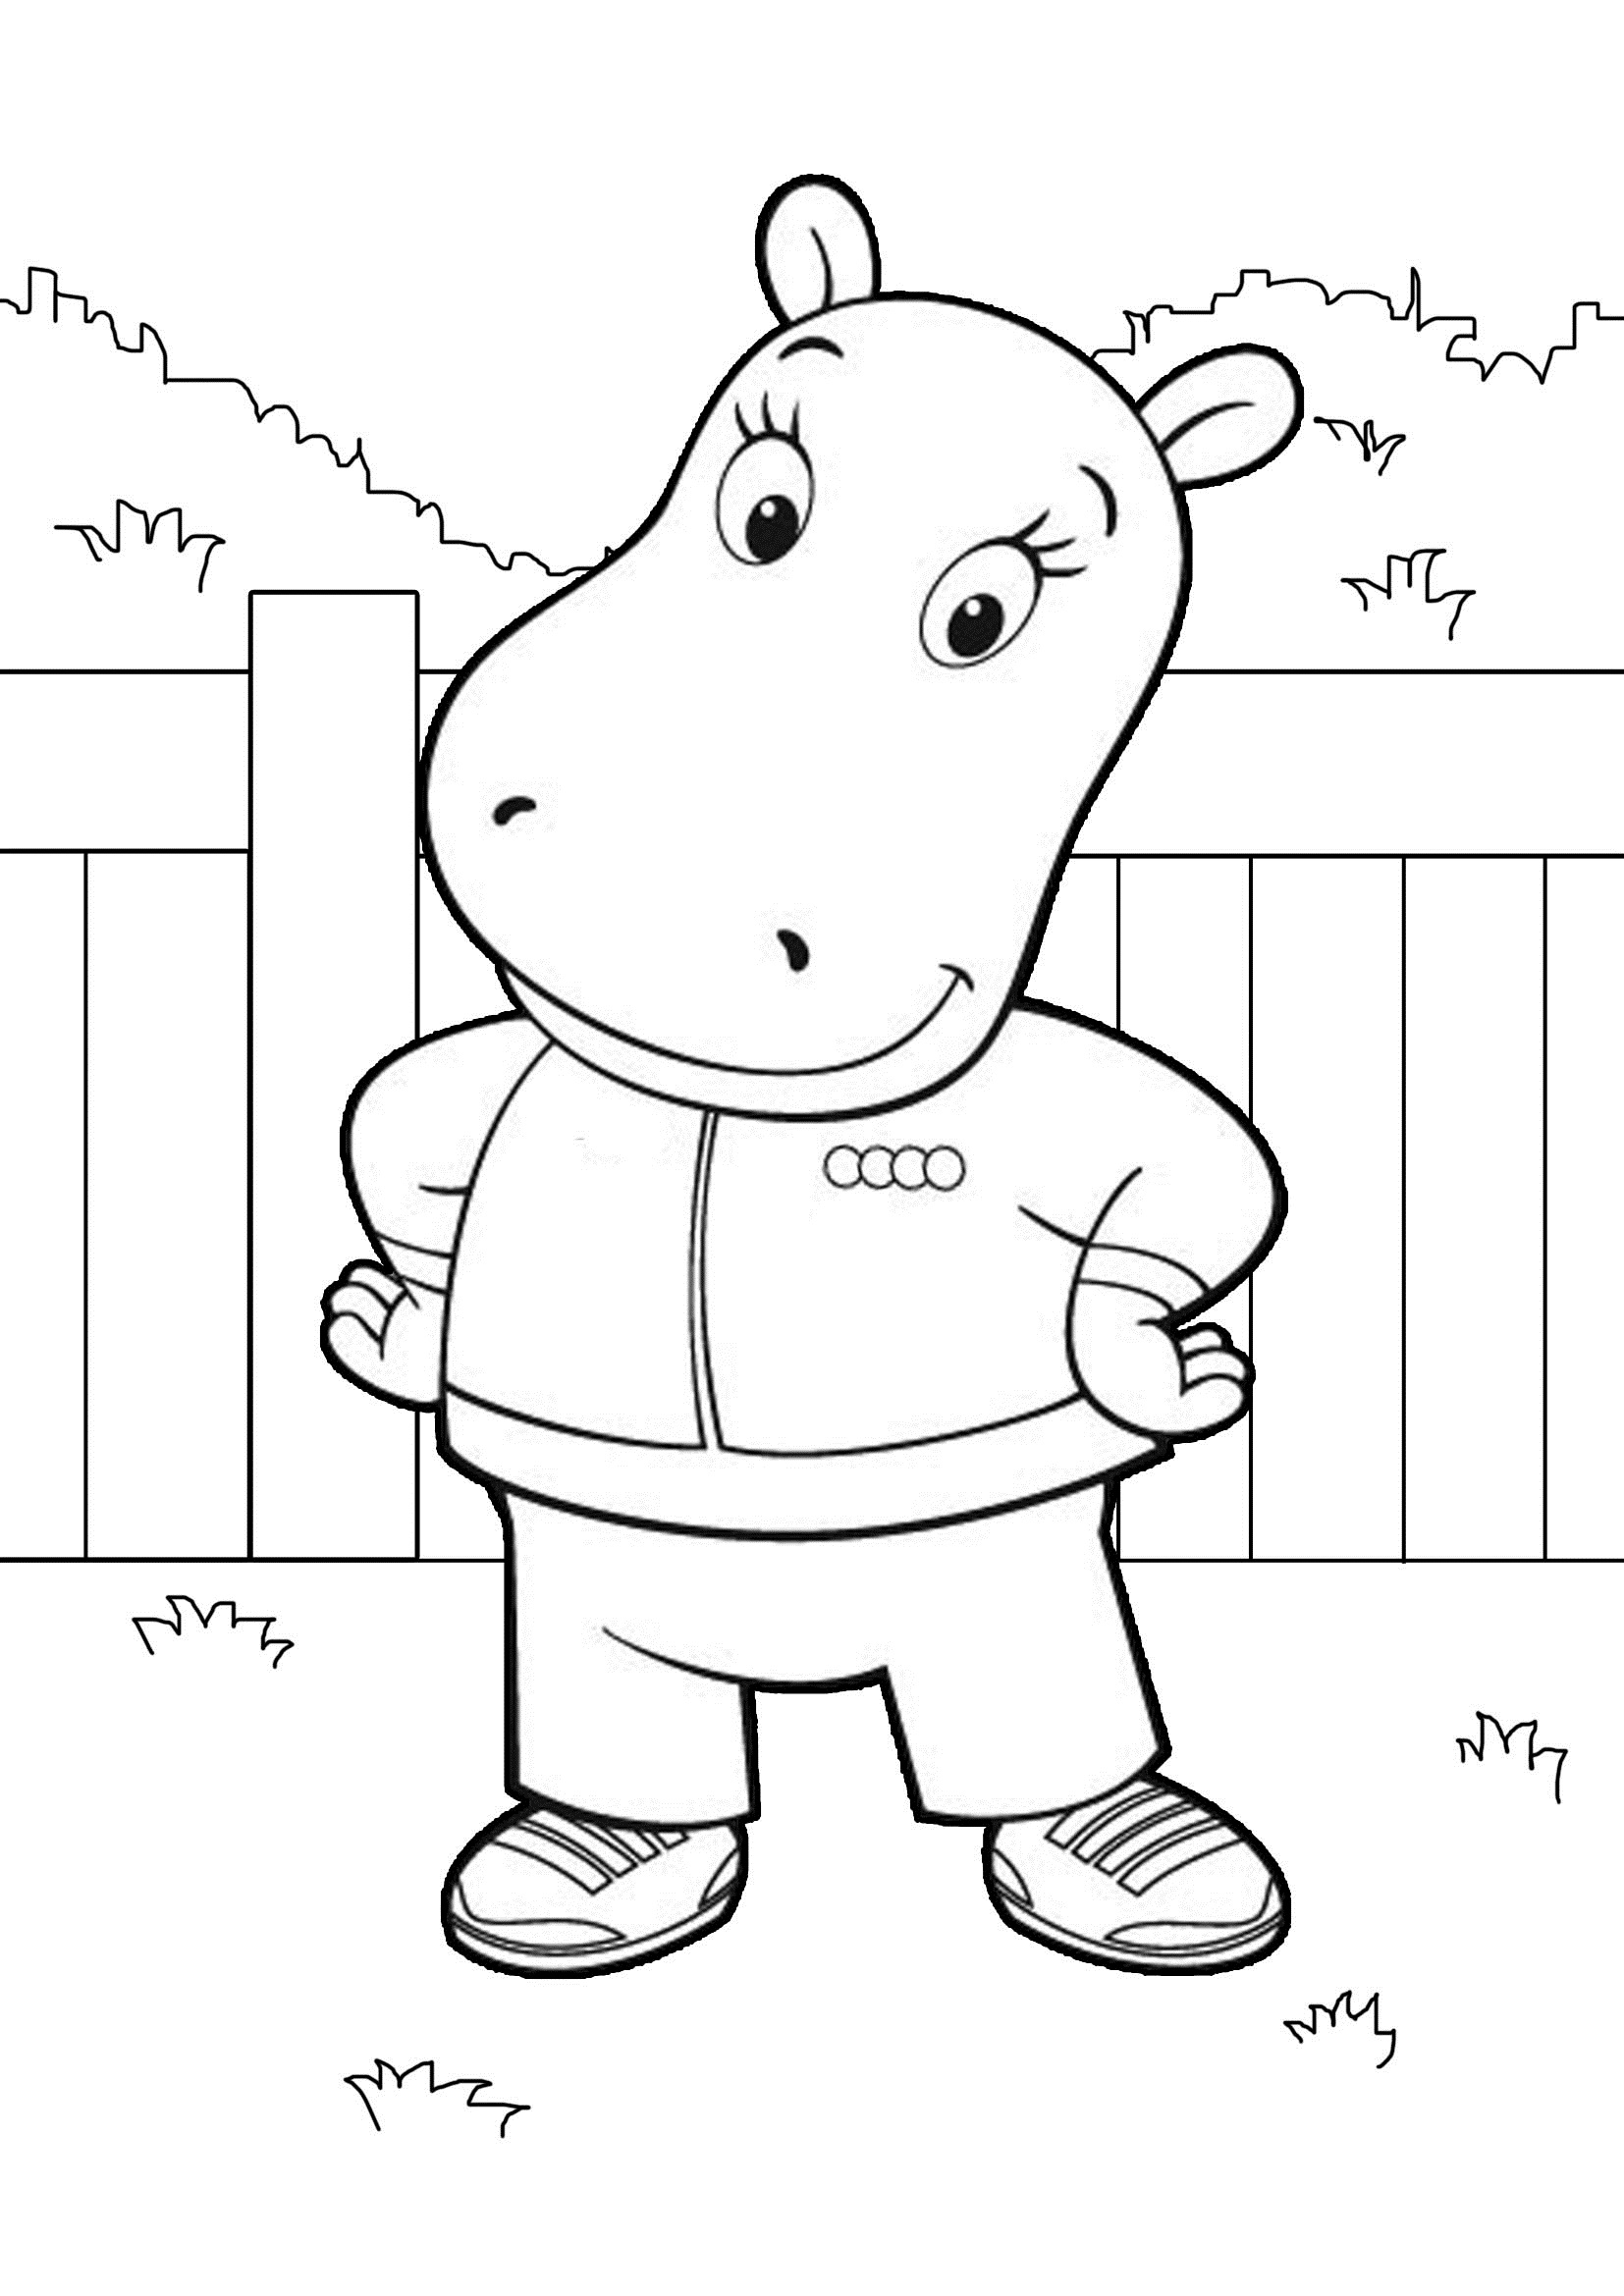 kids pages coloring printable - photo#23